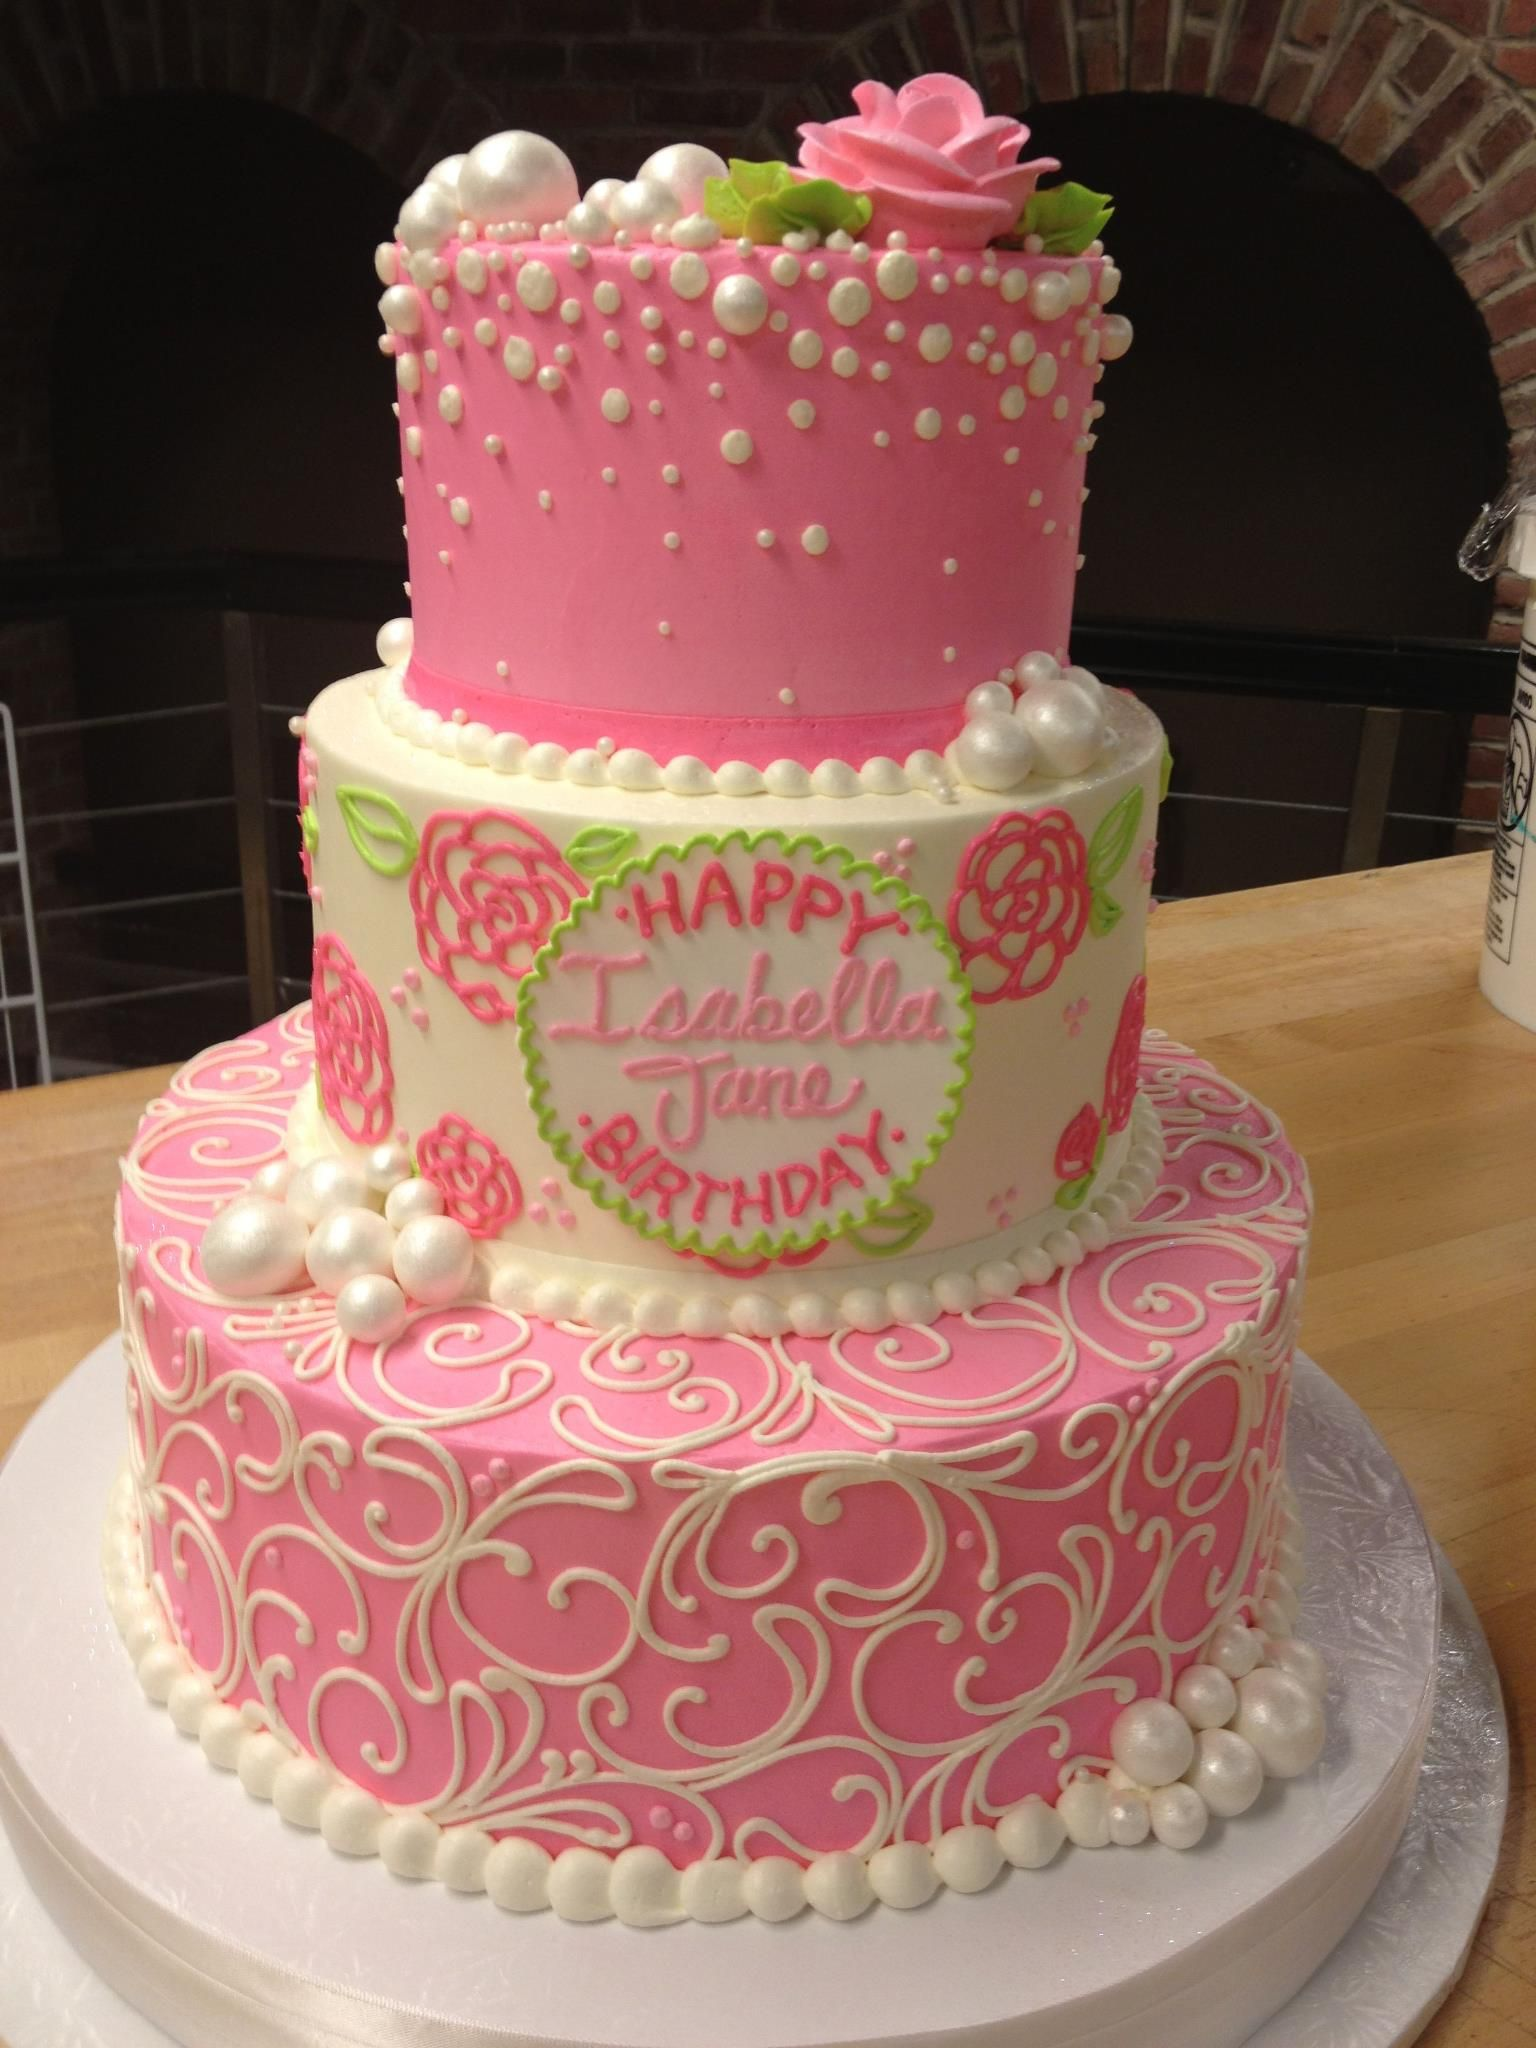 Another stunning cake by white flower cake shop bake me a cake another stunning cake by white flower cake shop dhlflorist Image collections